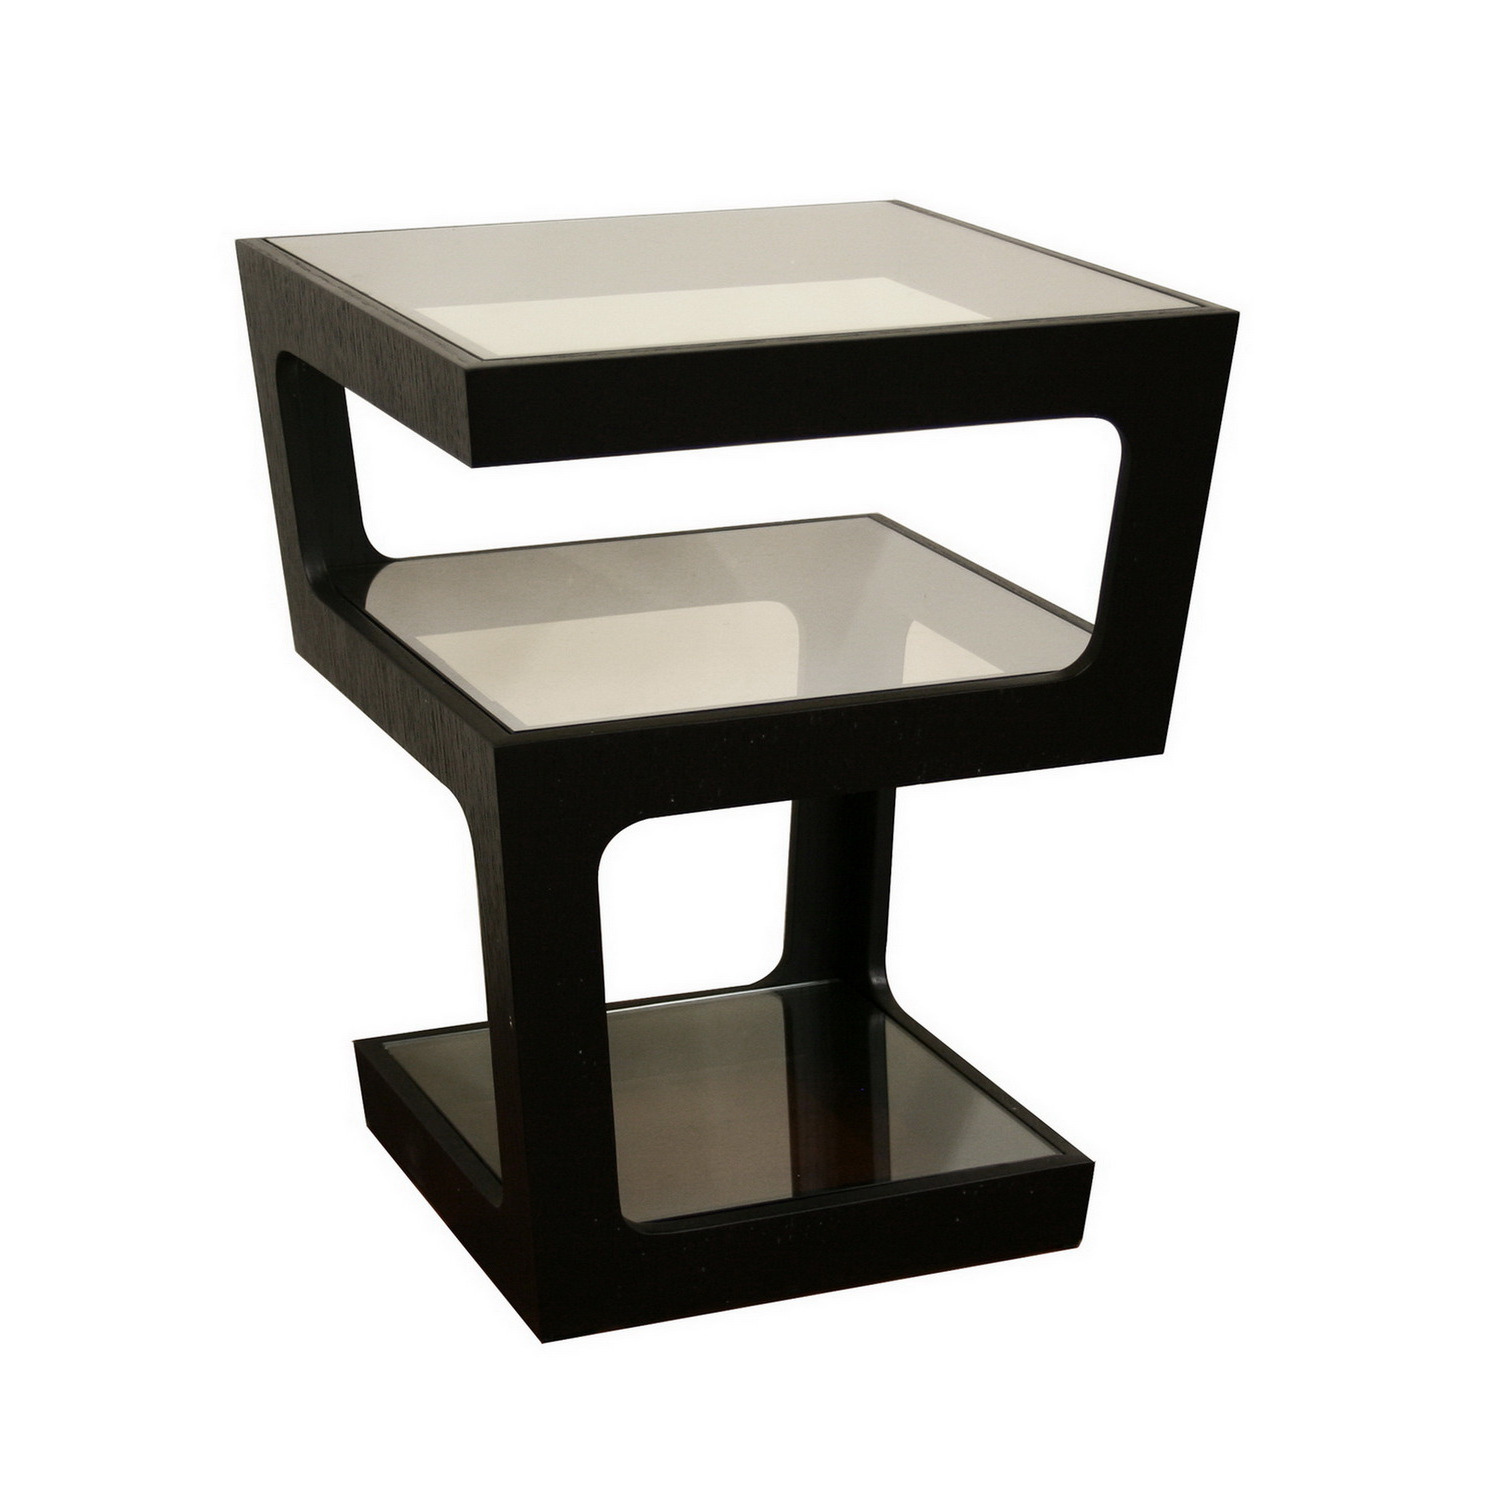 black wooden end tables with glass on top for small accent tables living room